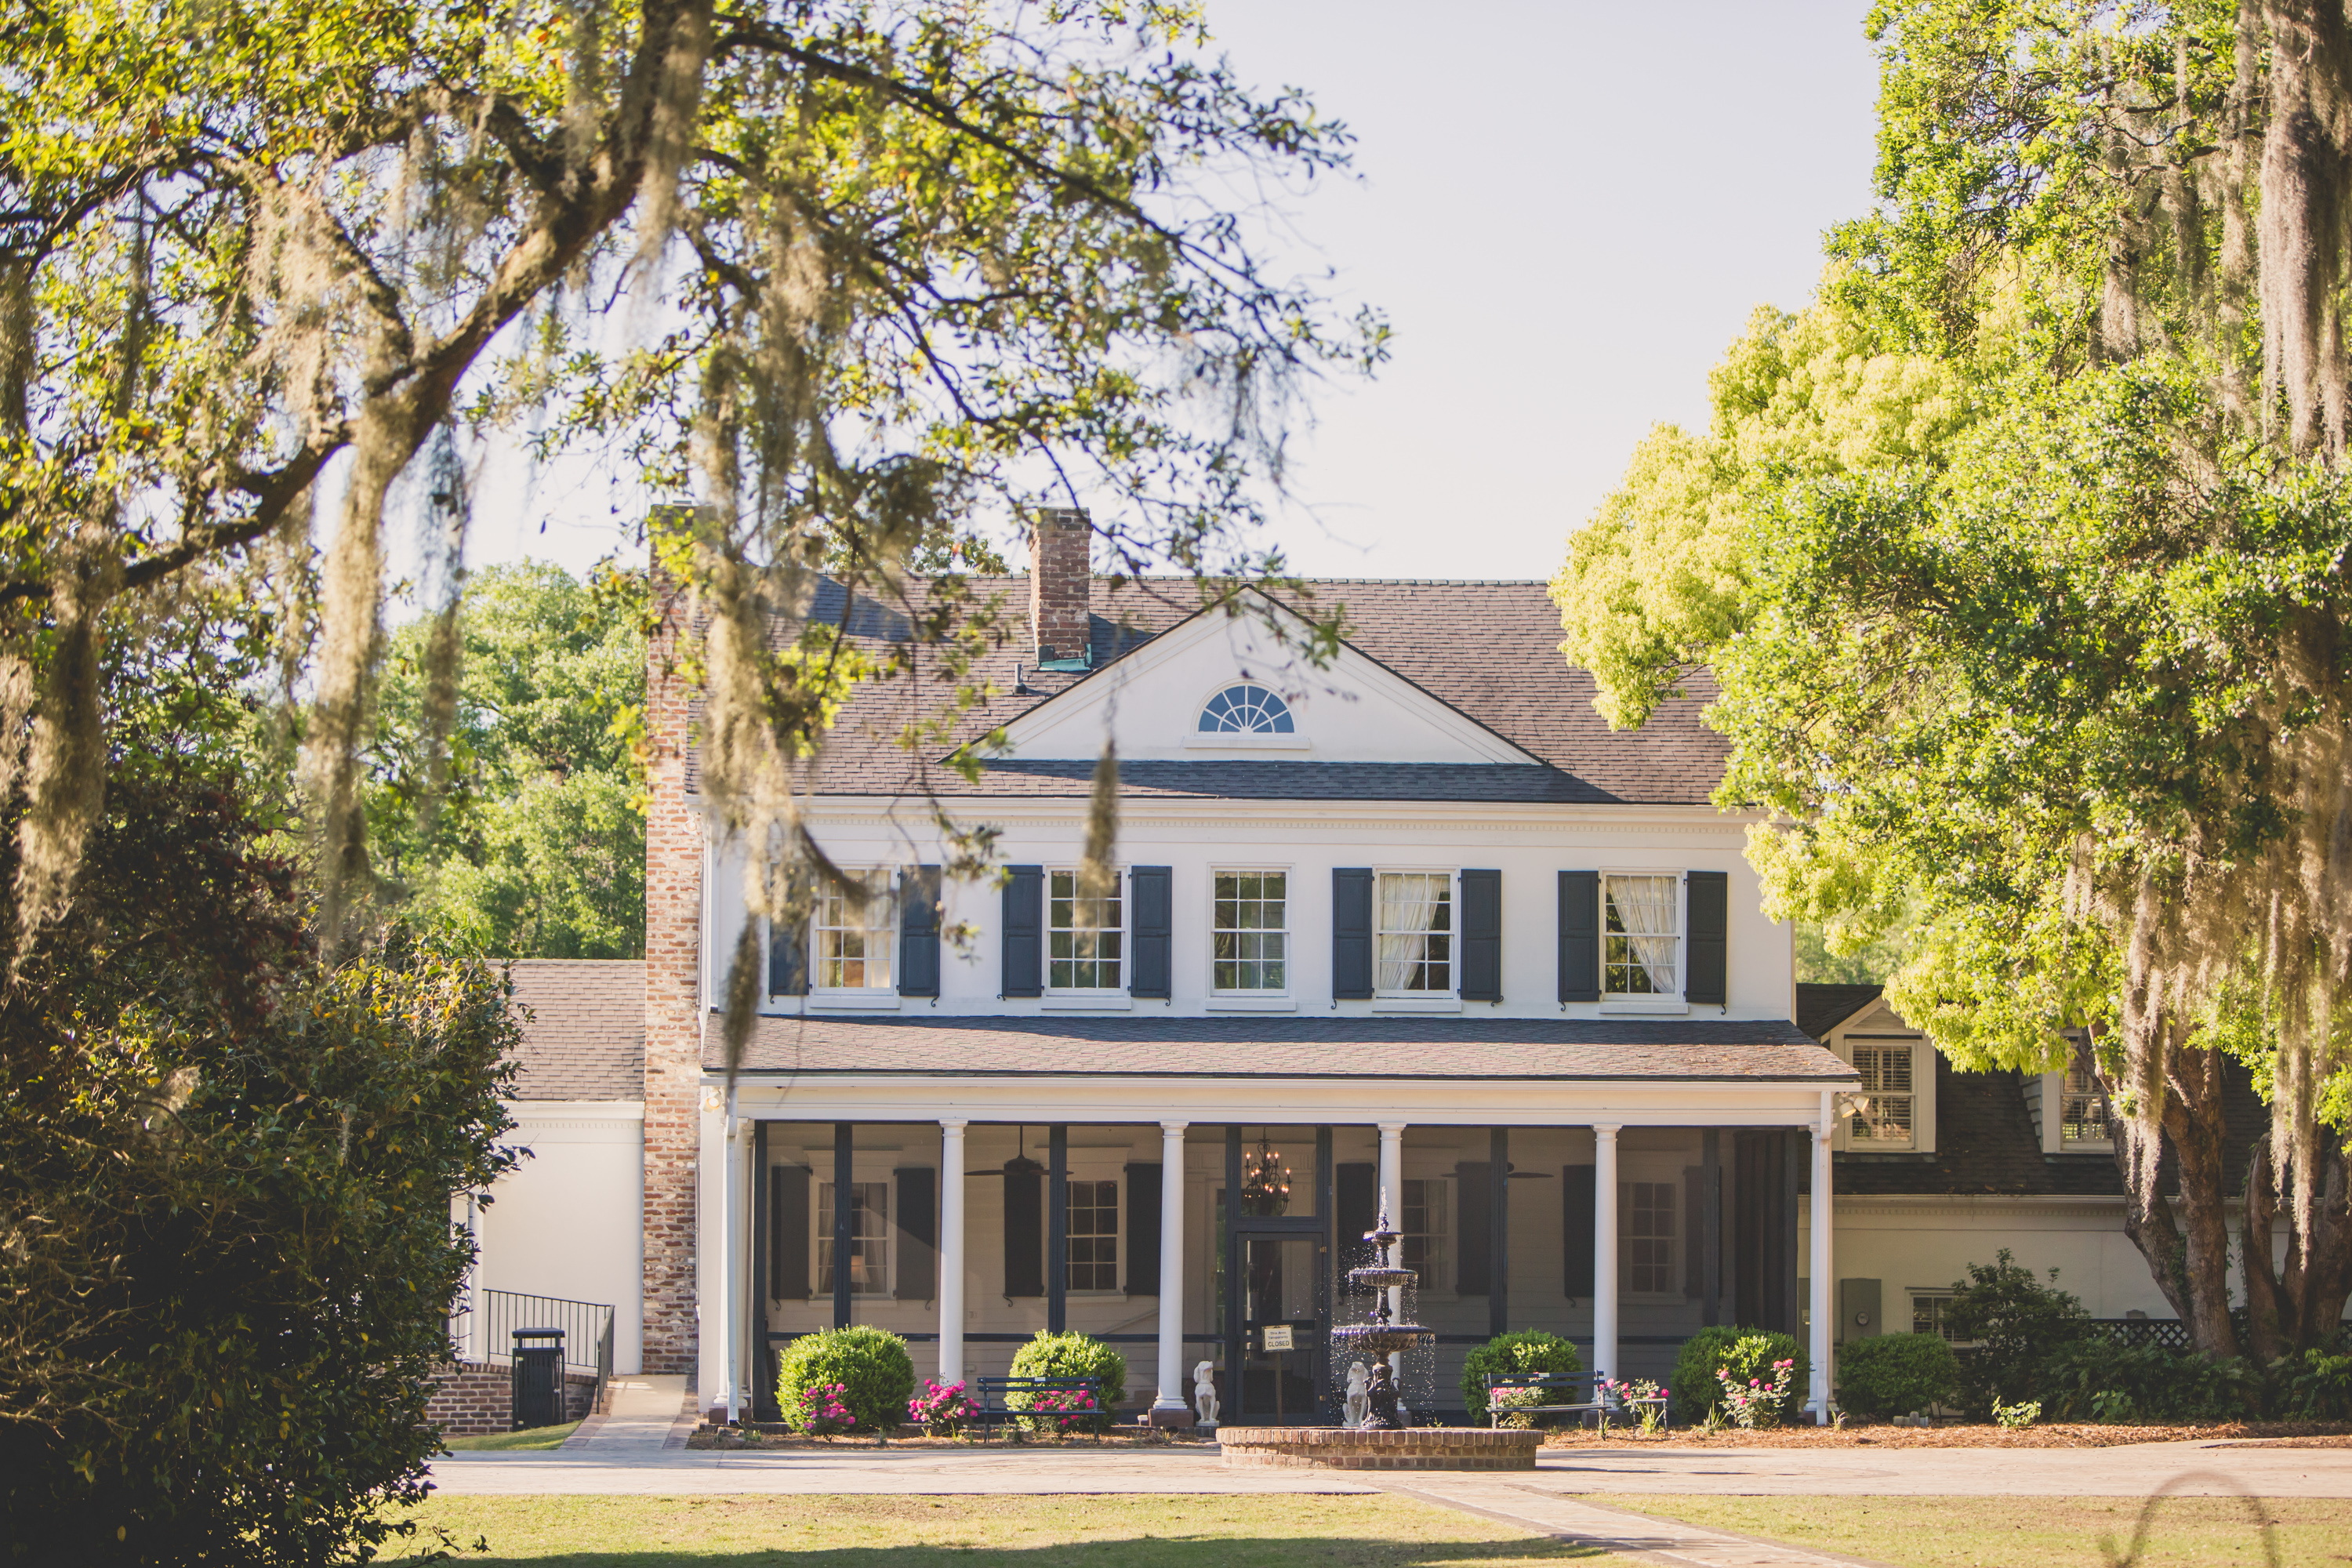 Featured Venue: Legare Waring House